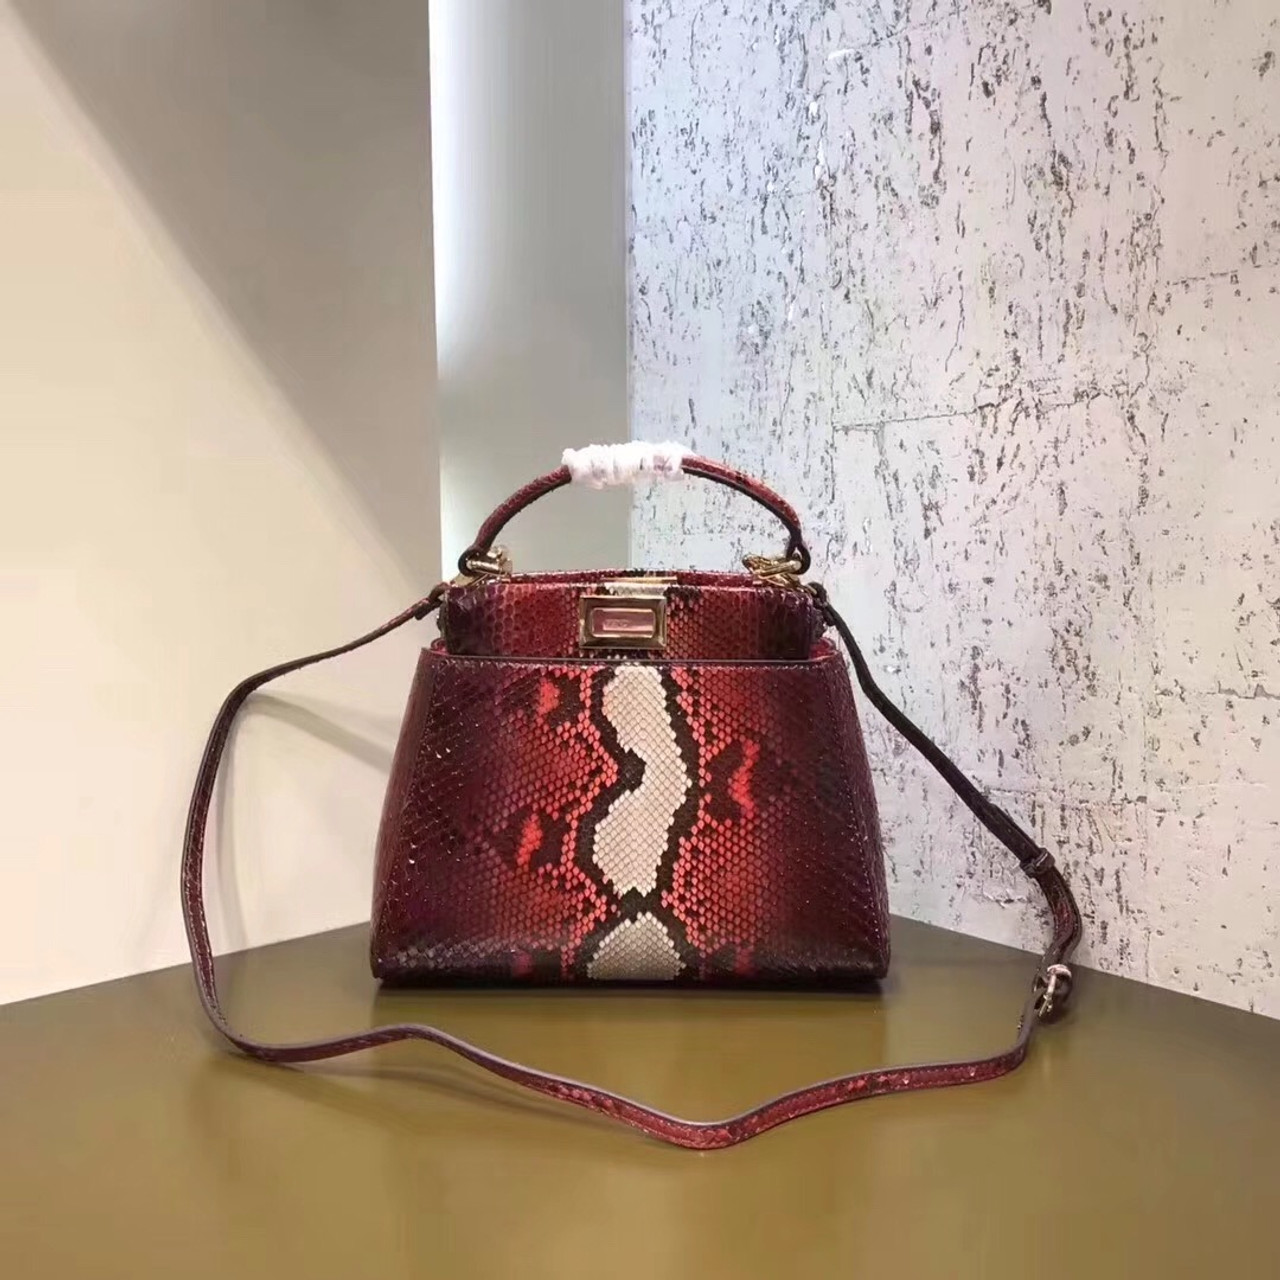 9aaa85f76c82 Fendi MINI PEEKABOO handbag in hand-painted Red python - Bella Vita Moda